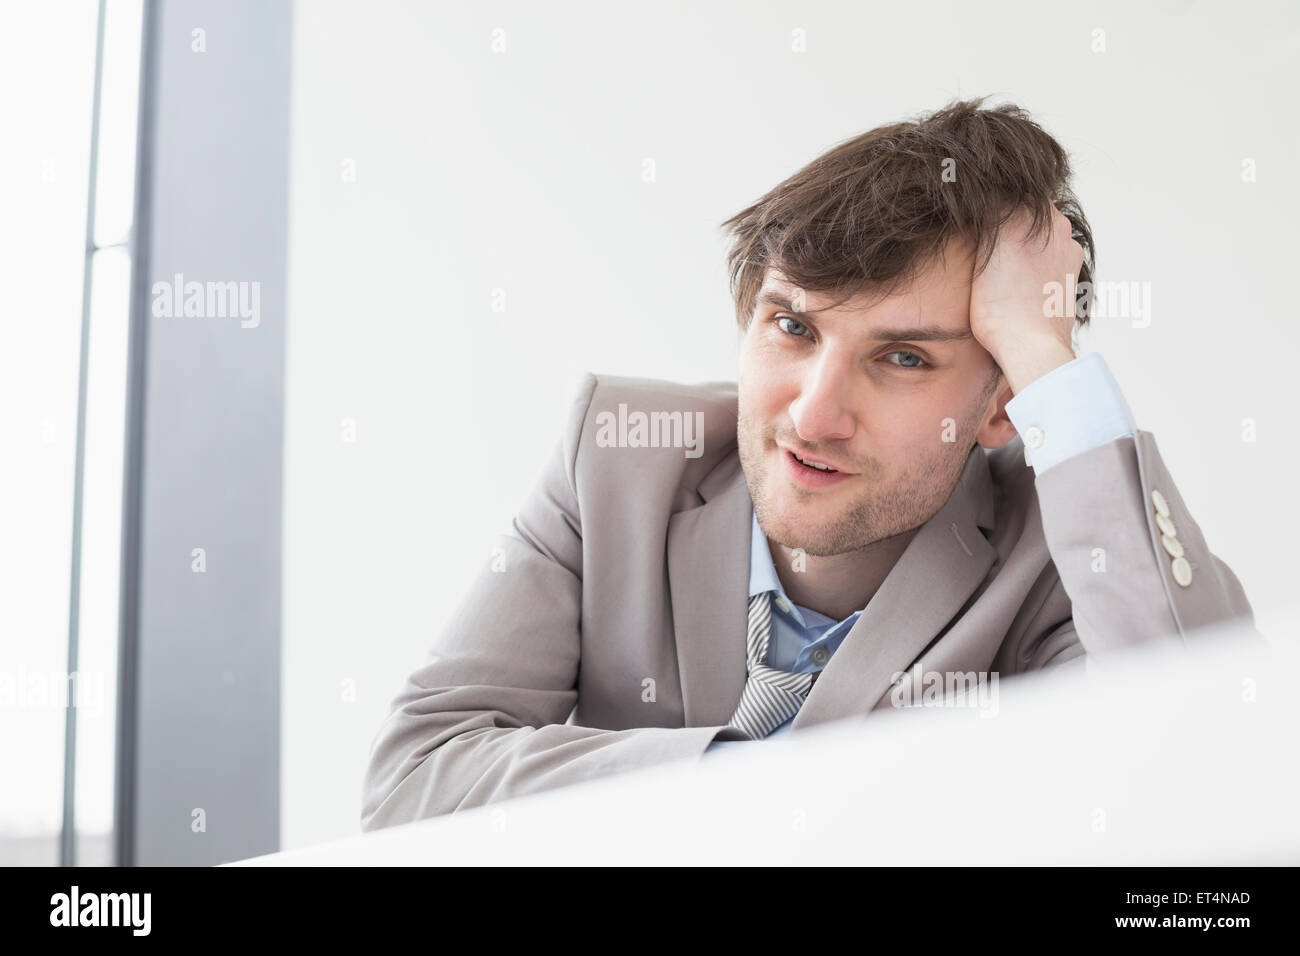 Businessman leaning on desk in office, Leipzig, Saxony, Germany - Stock Image